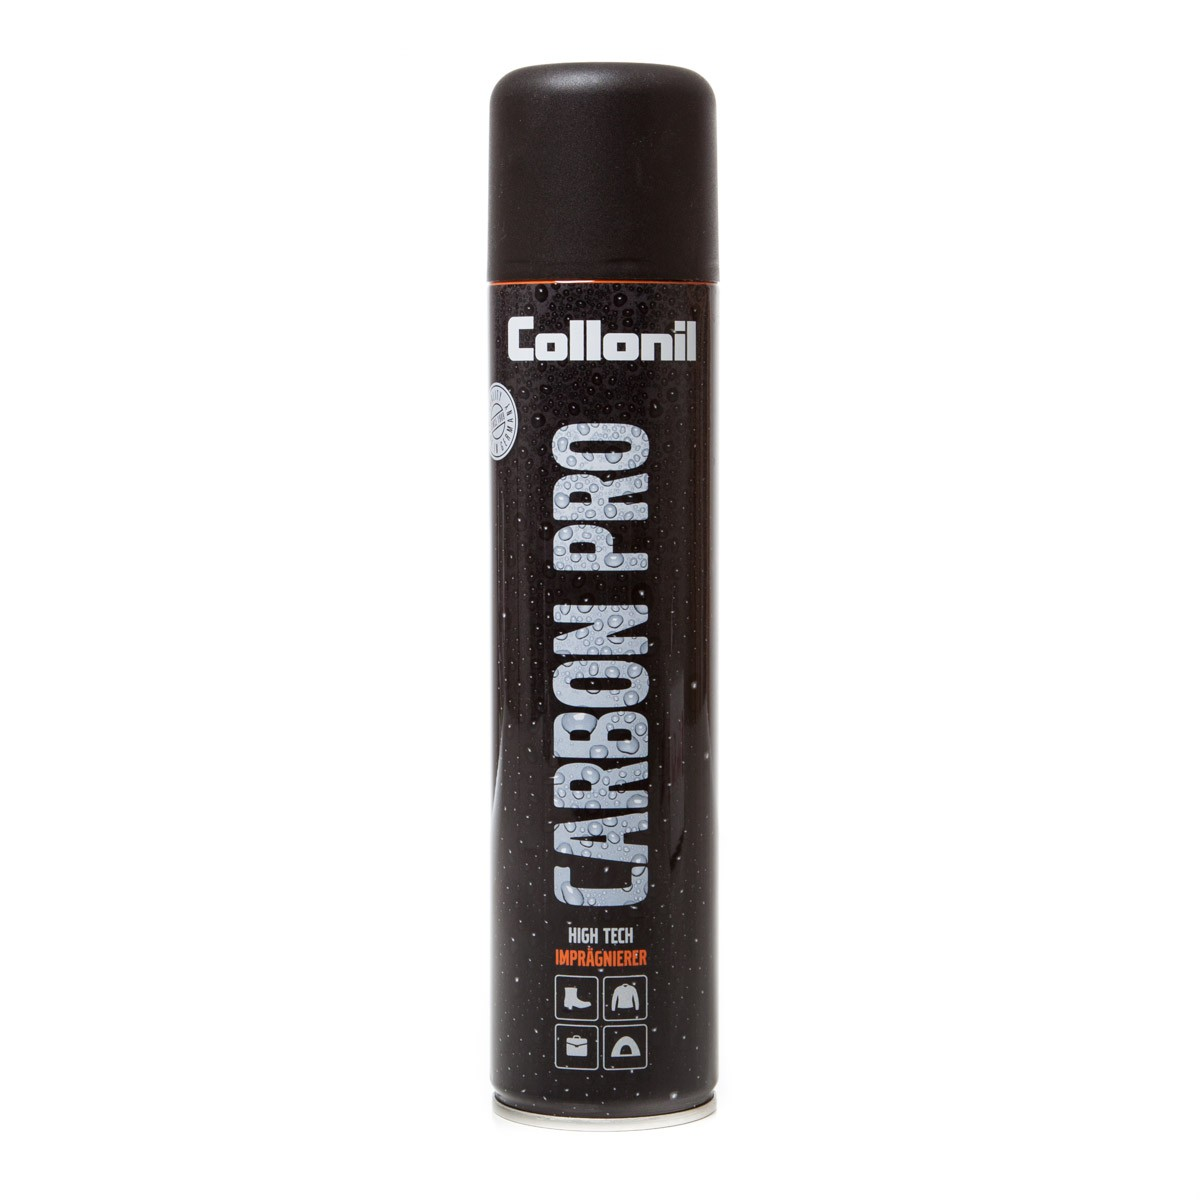 Collonil CARBON waterproofing spray 300 ml - colour-less